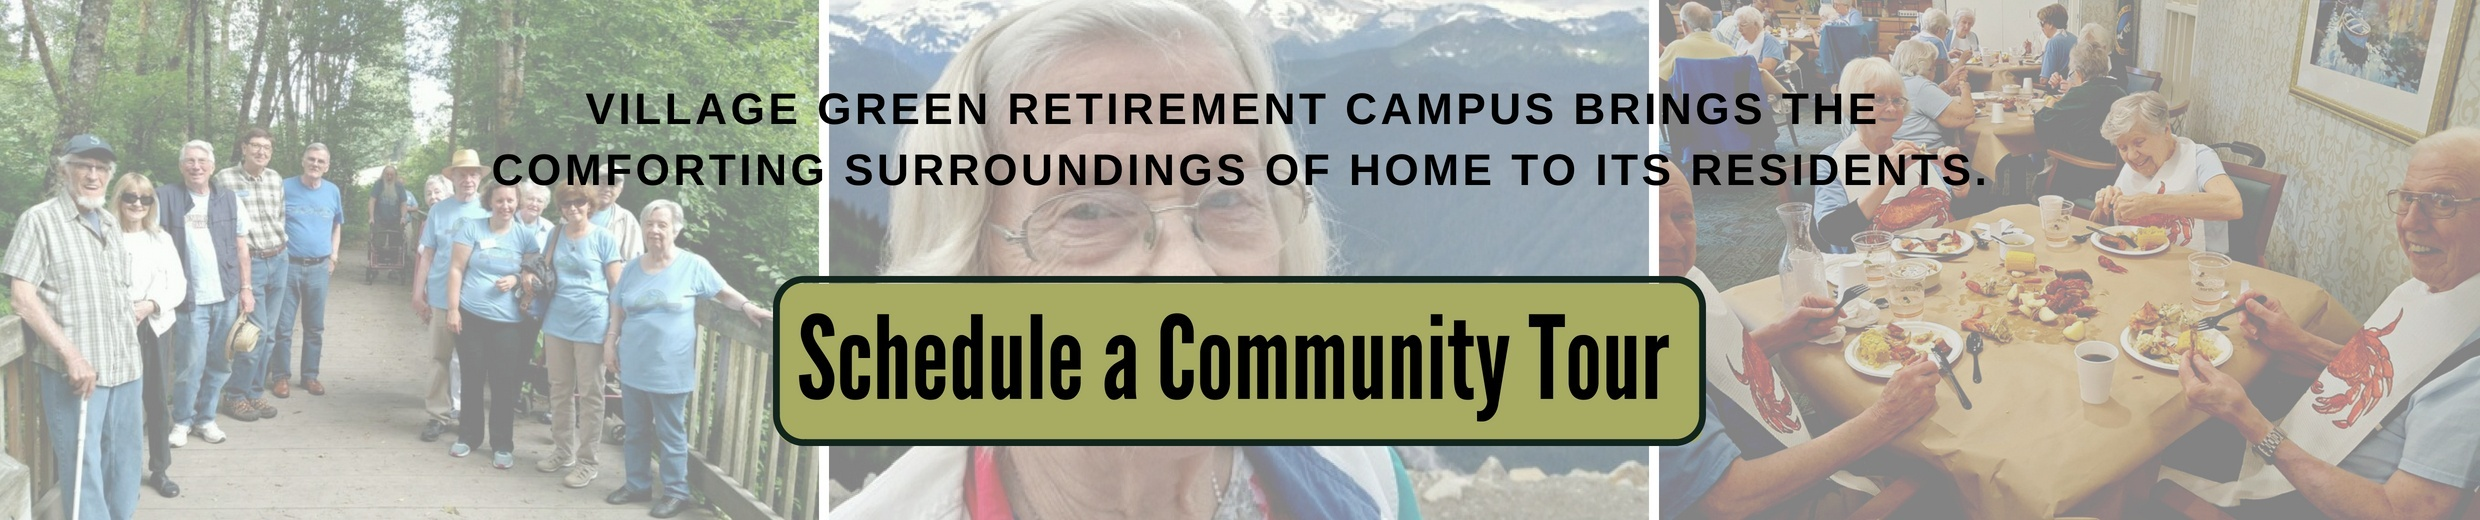 Schedule a Tour of the retirement community.